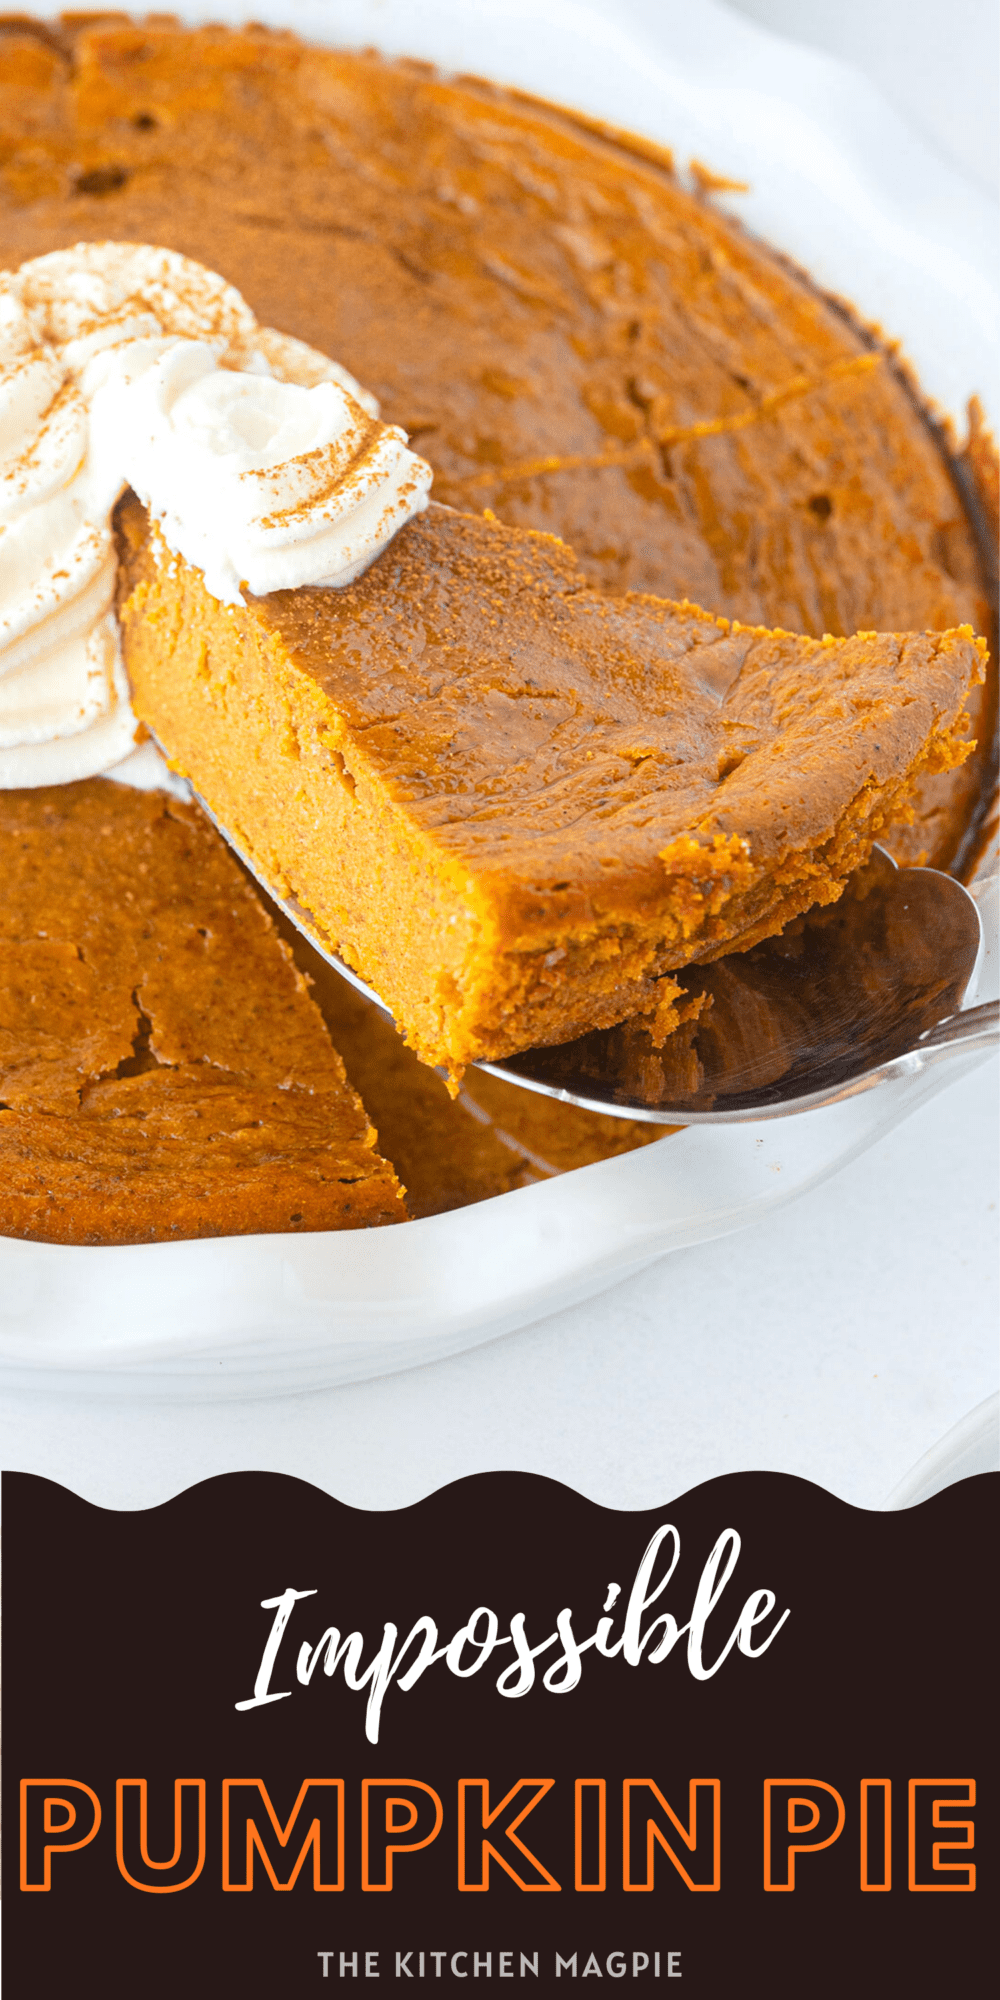 The classic Bisquick Impossible Pumpkin pie, the easiest pumpkin pie you will ever make!